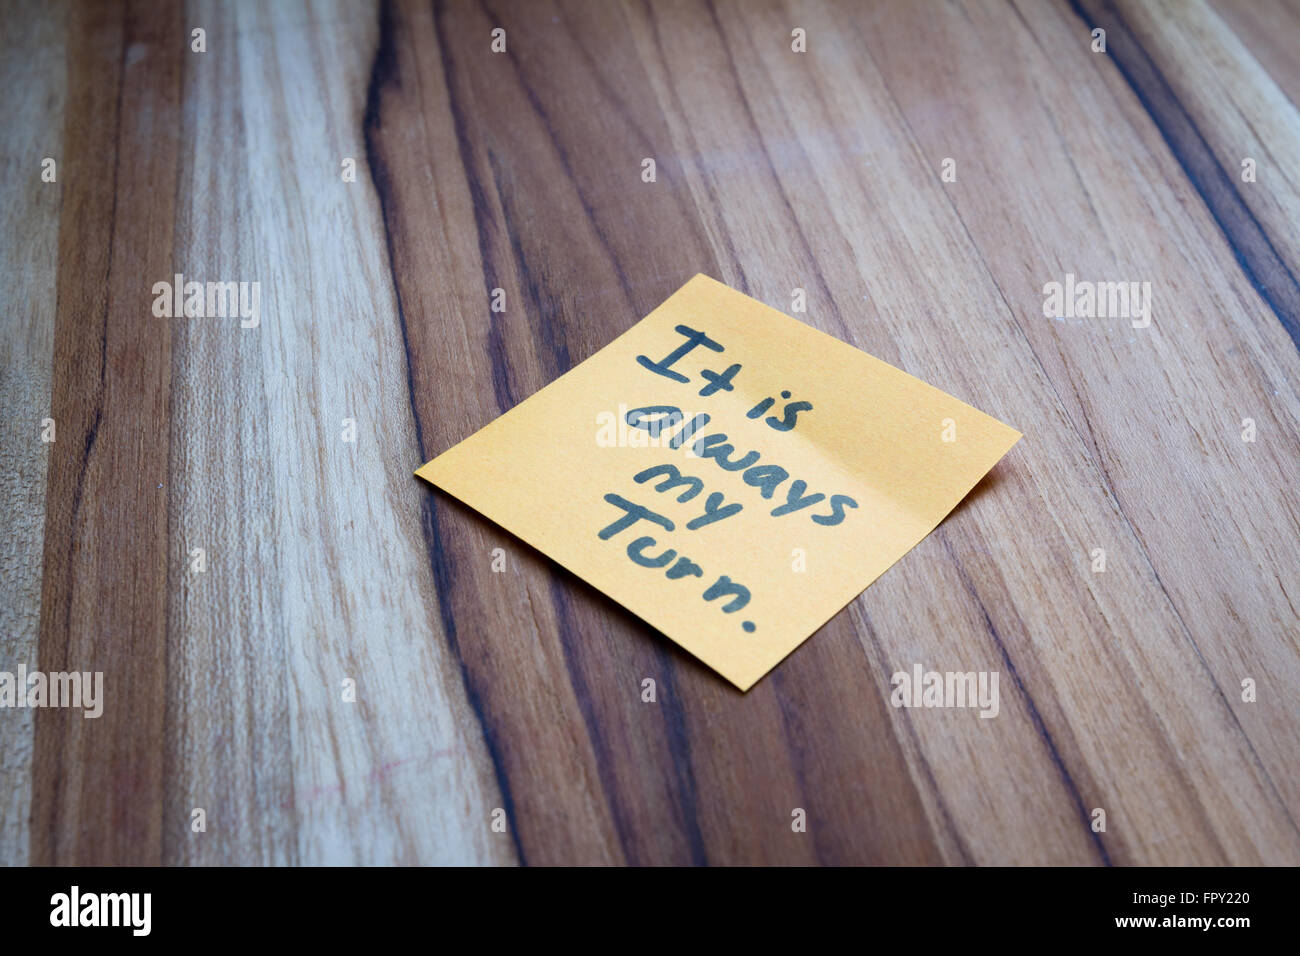 concept for self help using empowering words on a sticky note - Stock Image